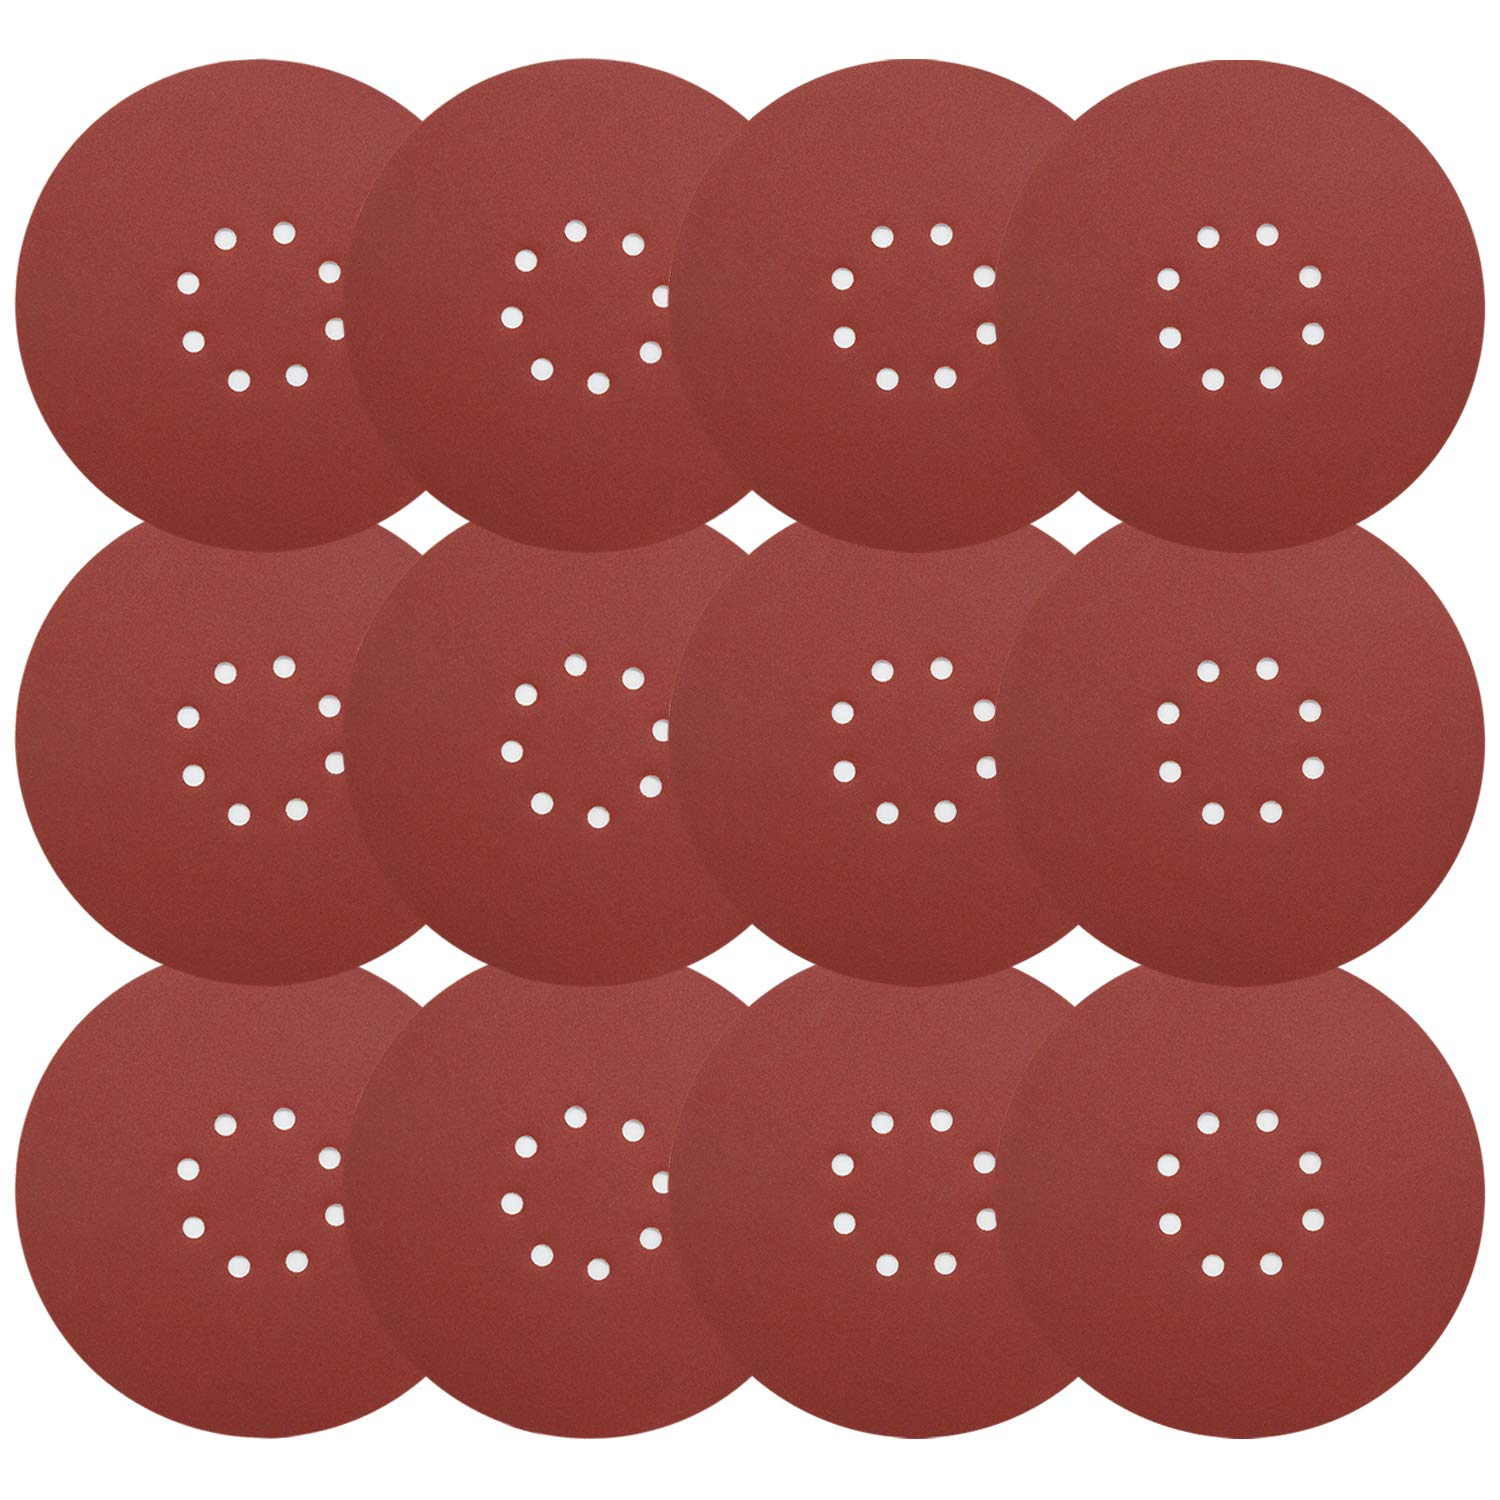 60 to 10000 Grits Grinding Abrasive Sanding Disc for Wood Metal Mirror Jewelry Car 180 PCS 1 Inch Sandpaper GOH DODD Wet Dry Sander Sheets with Backing Pad and Soft Foam Buffering Pad